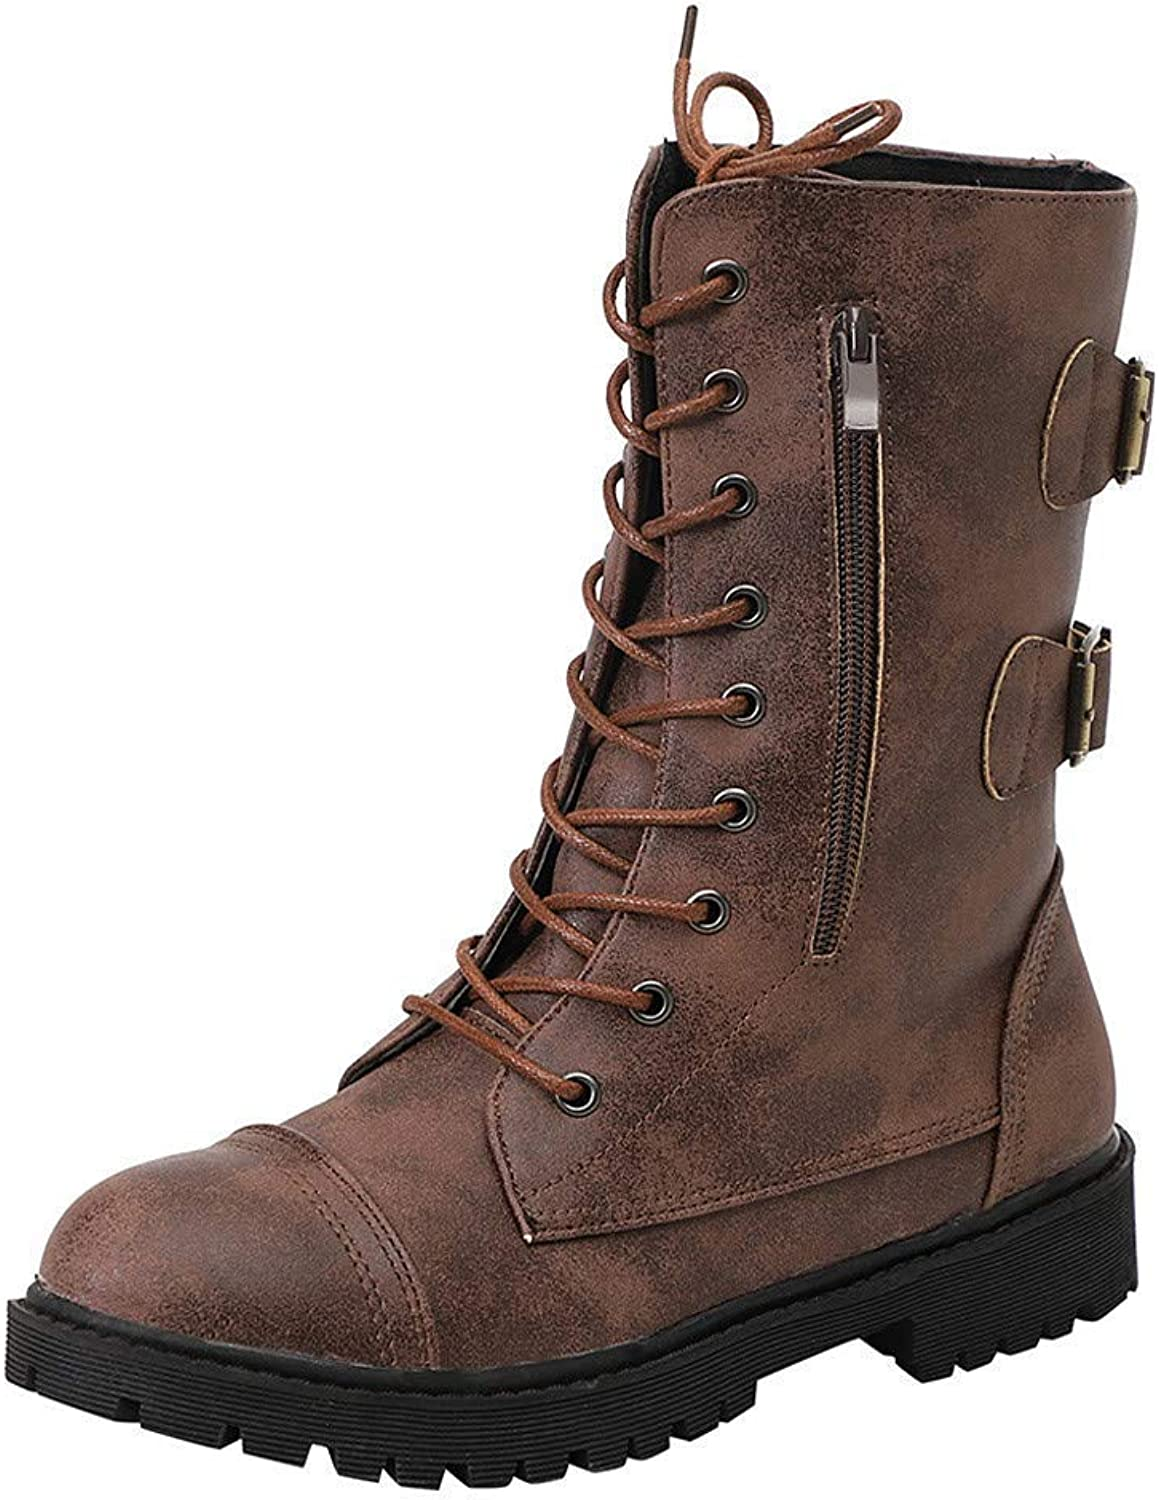 SUNNY Store Women's Mango-71 Faux Leather Military Style Ankle Boots Thick Sole Buckles